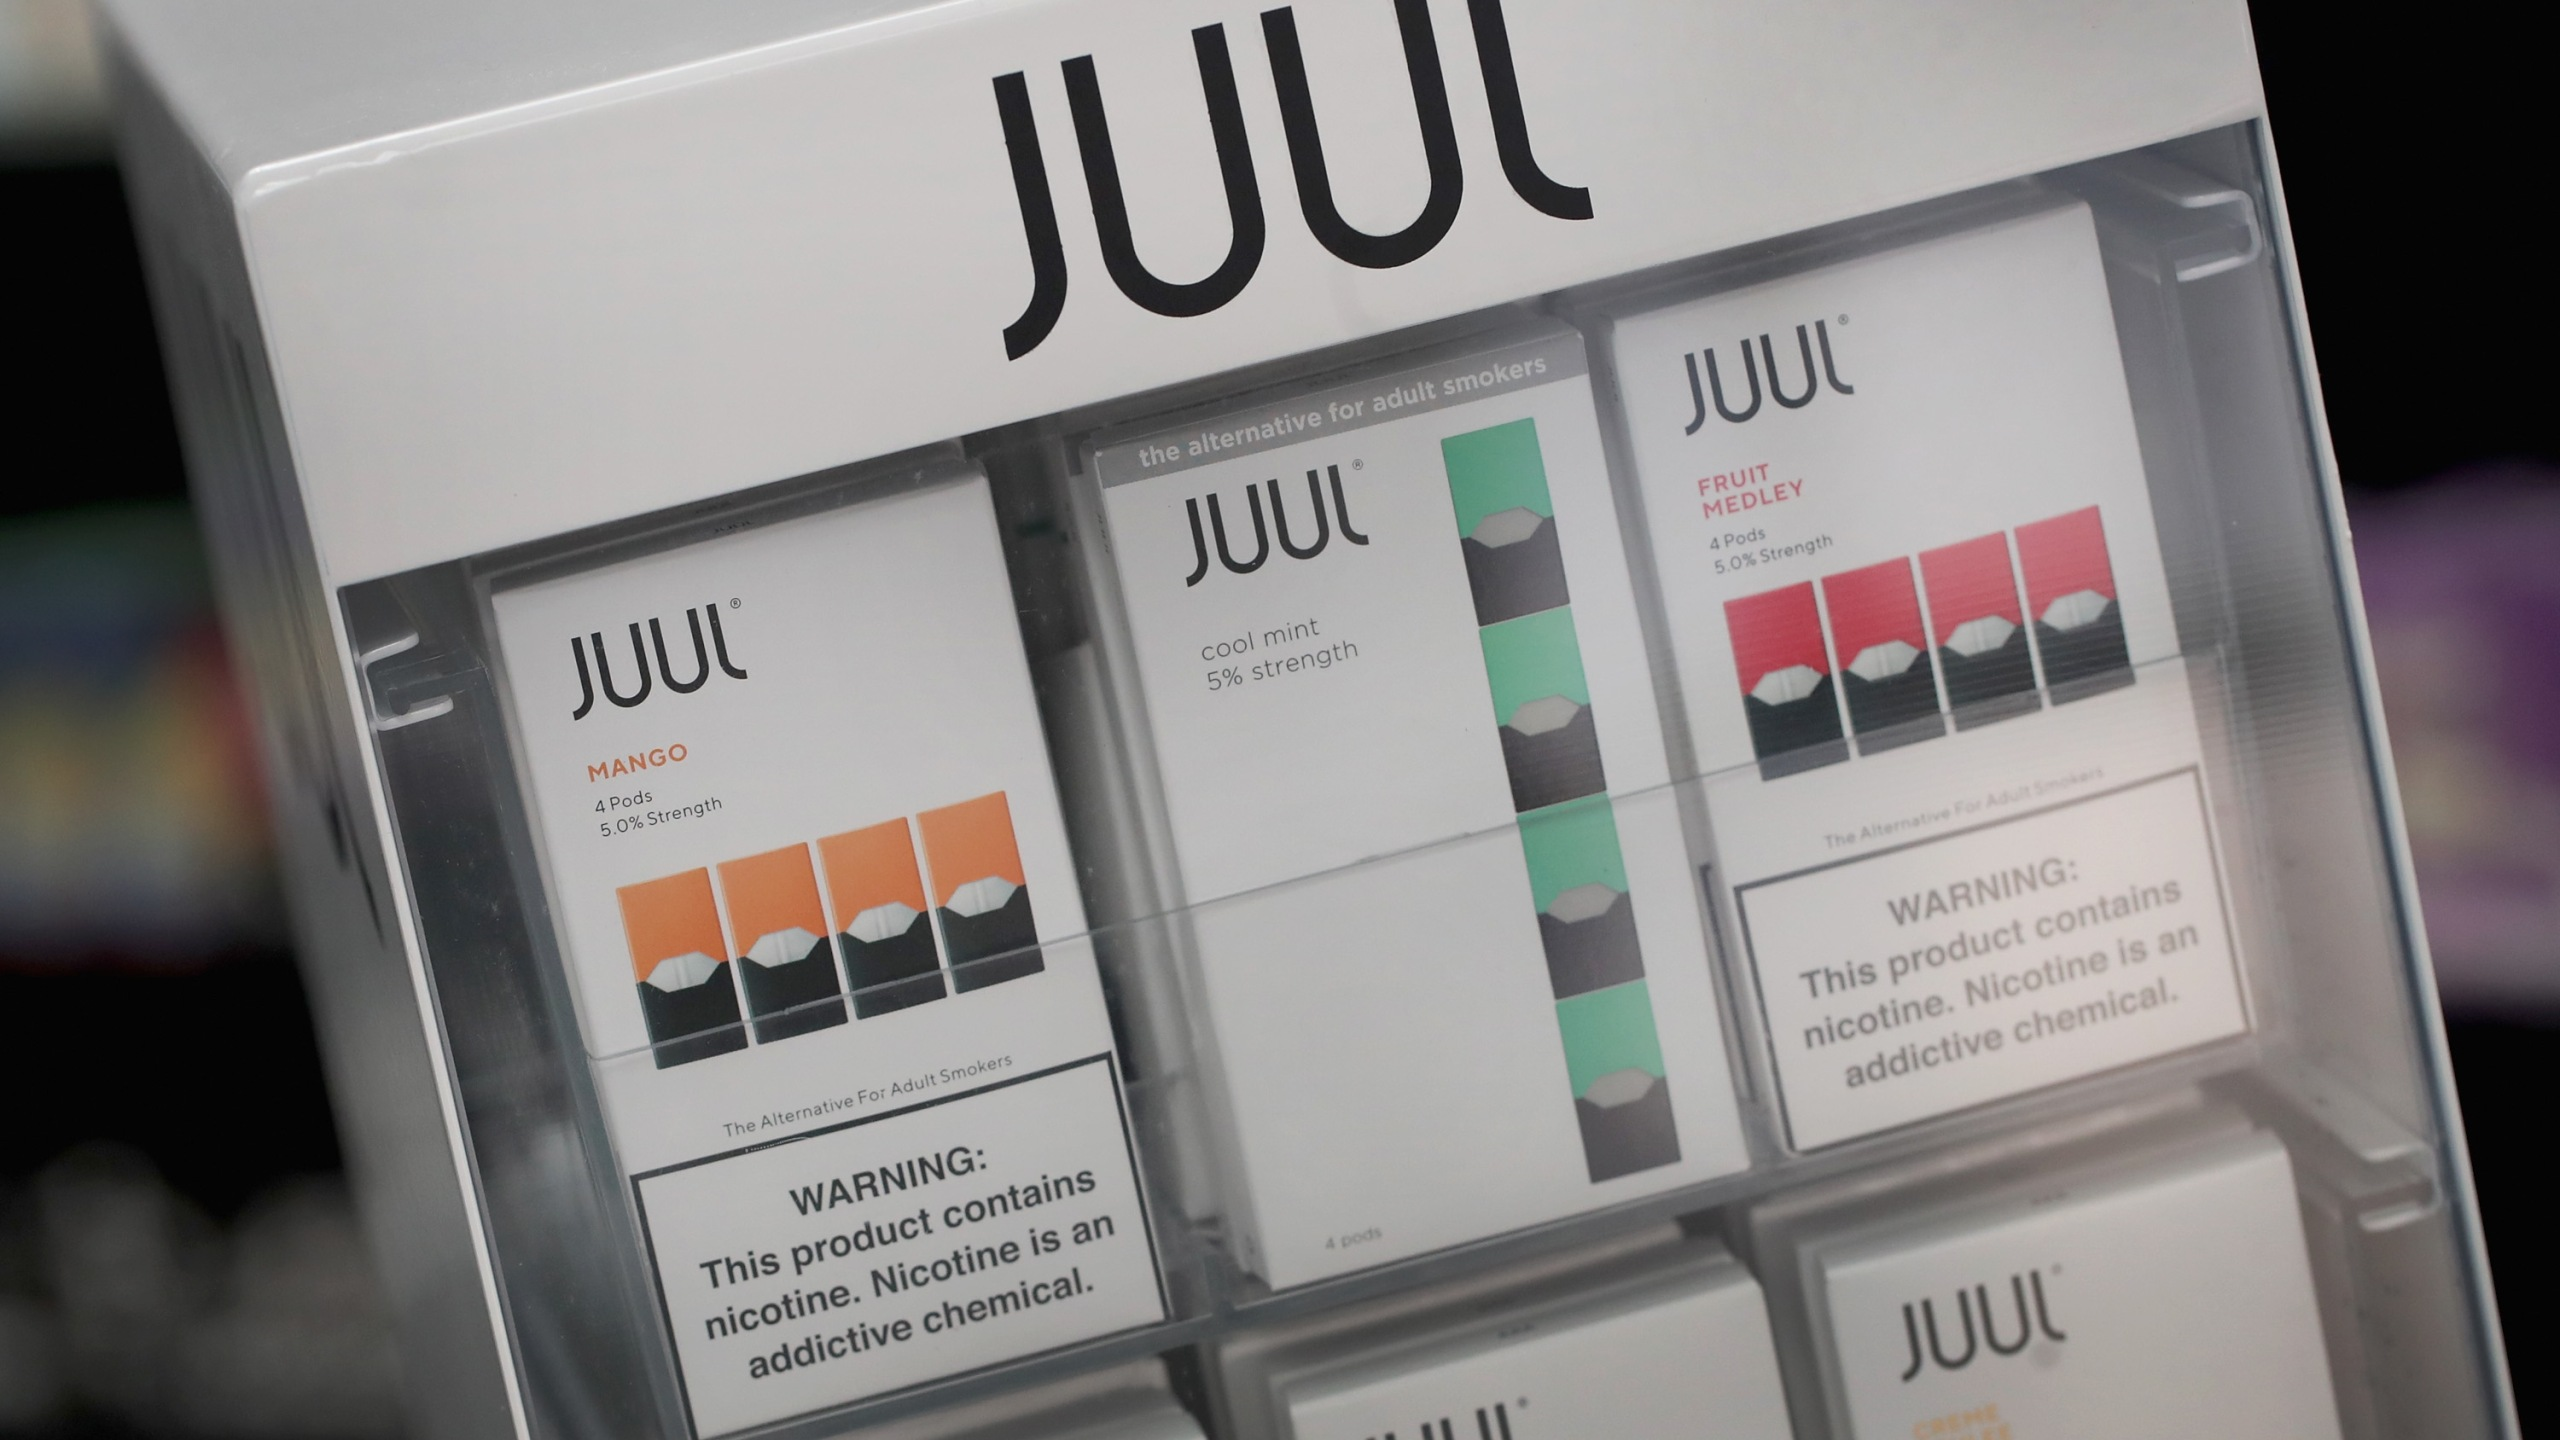 Electronic cigarettes and pods by Juul, the nation's largest maker of vaping products, are displayed for sale at the Smoke Depot in Chicago on Sept. 13, 2018. (Credit: Scott Olson / Getty Images)